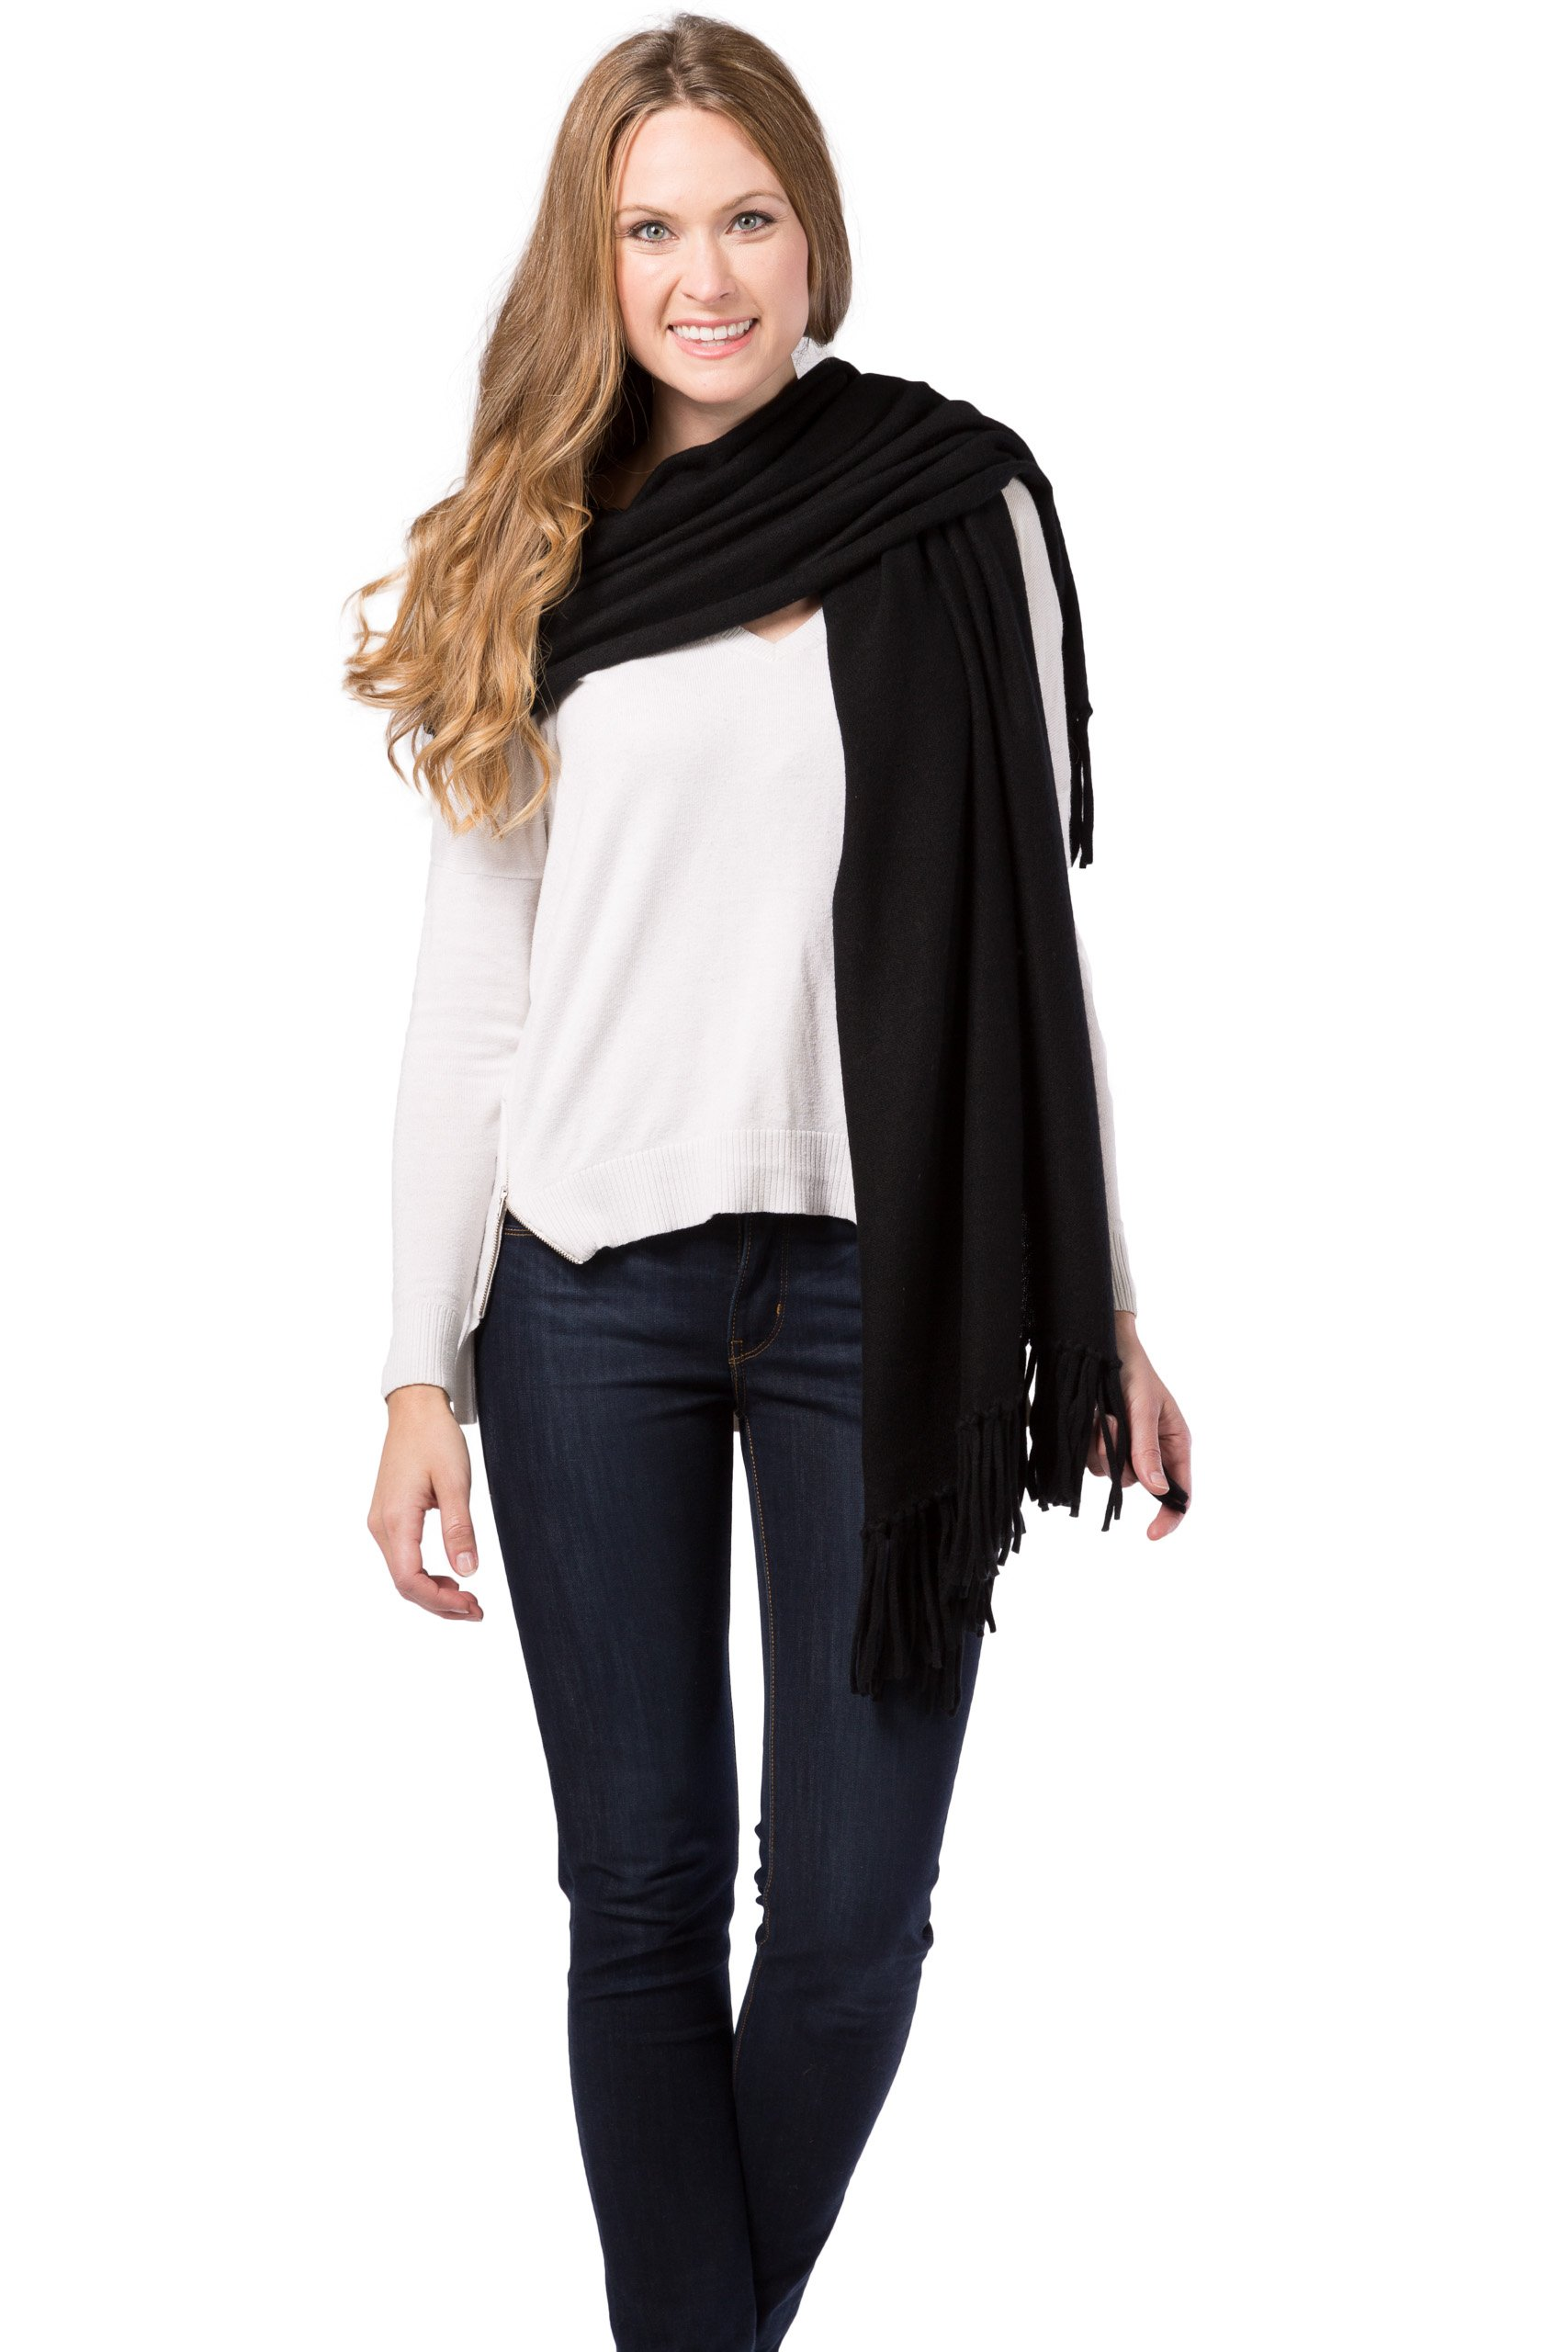 Fishers Finery Women's 100% Cashmere Knit Shawl with Fringe; 78'' X 28'' (Black)